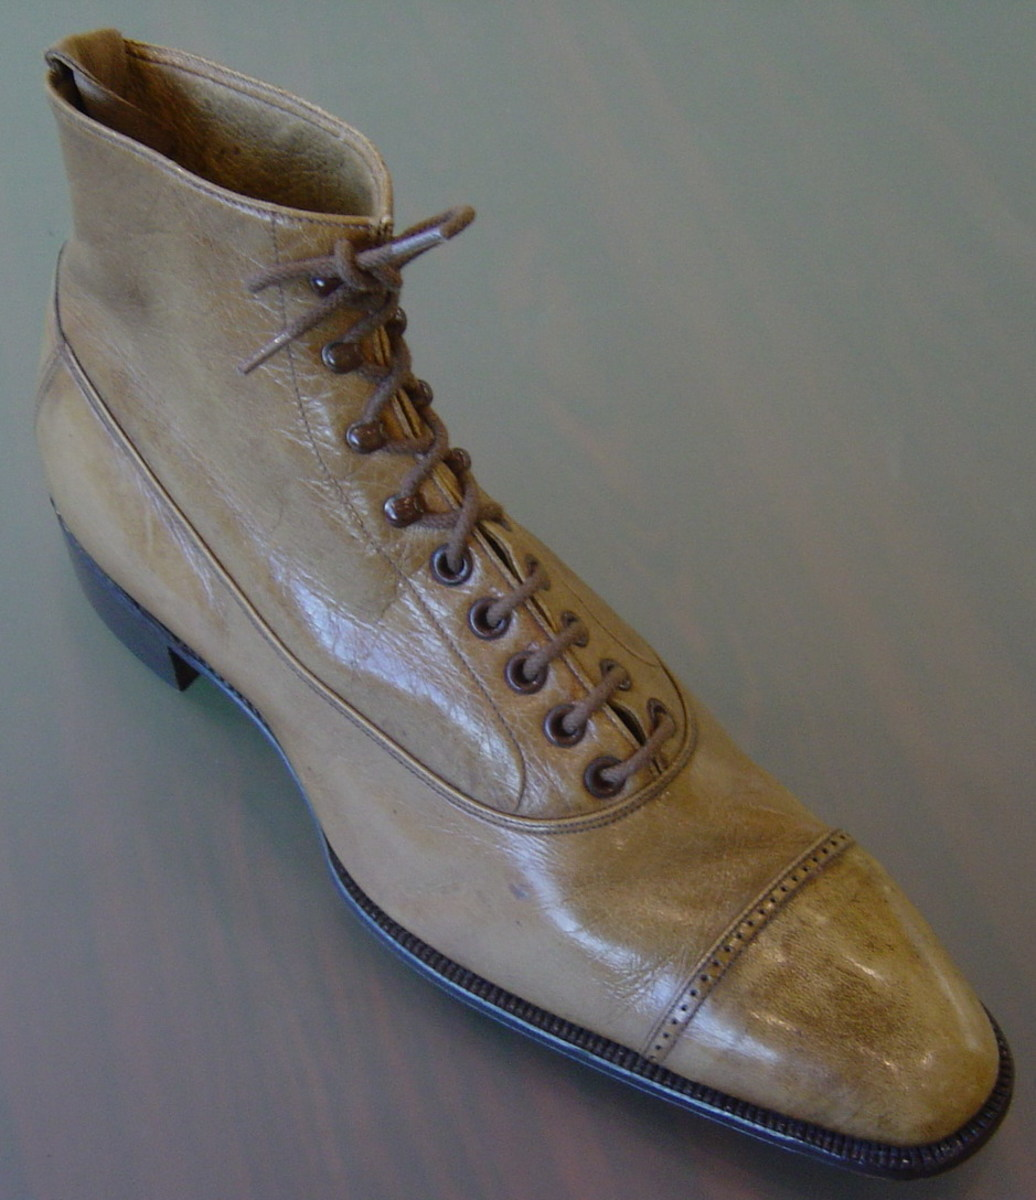 Balmoral boot circa 1940s You can see the seam that divides the upper and lower part of the boot.